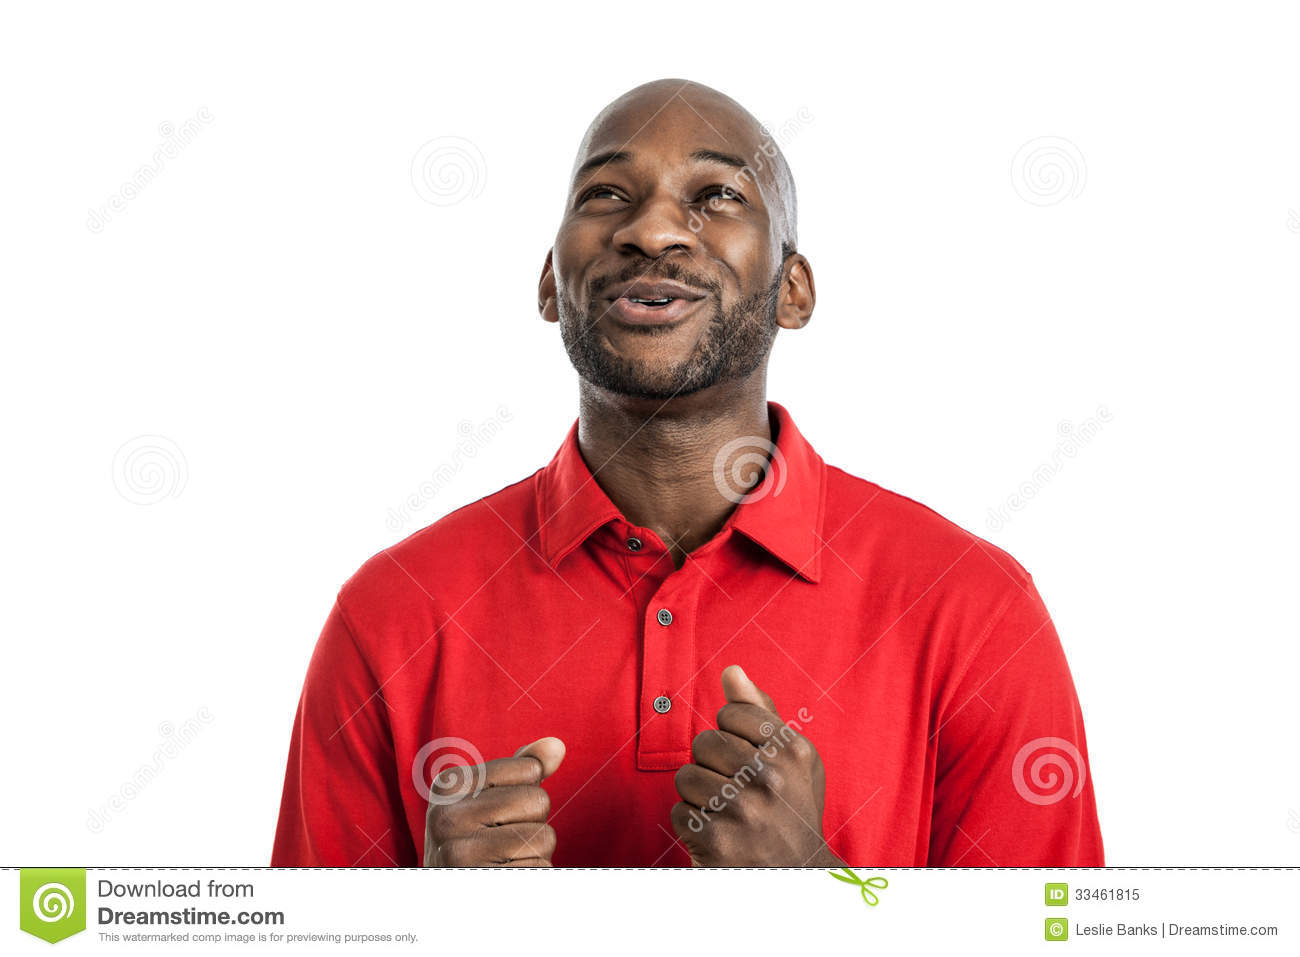 happy-black-man-portrait-handsome-excited-his-late-s-isolated-white-33461815.jpg